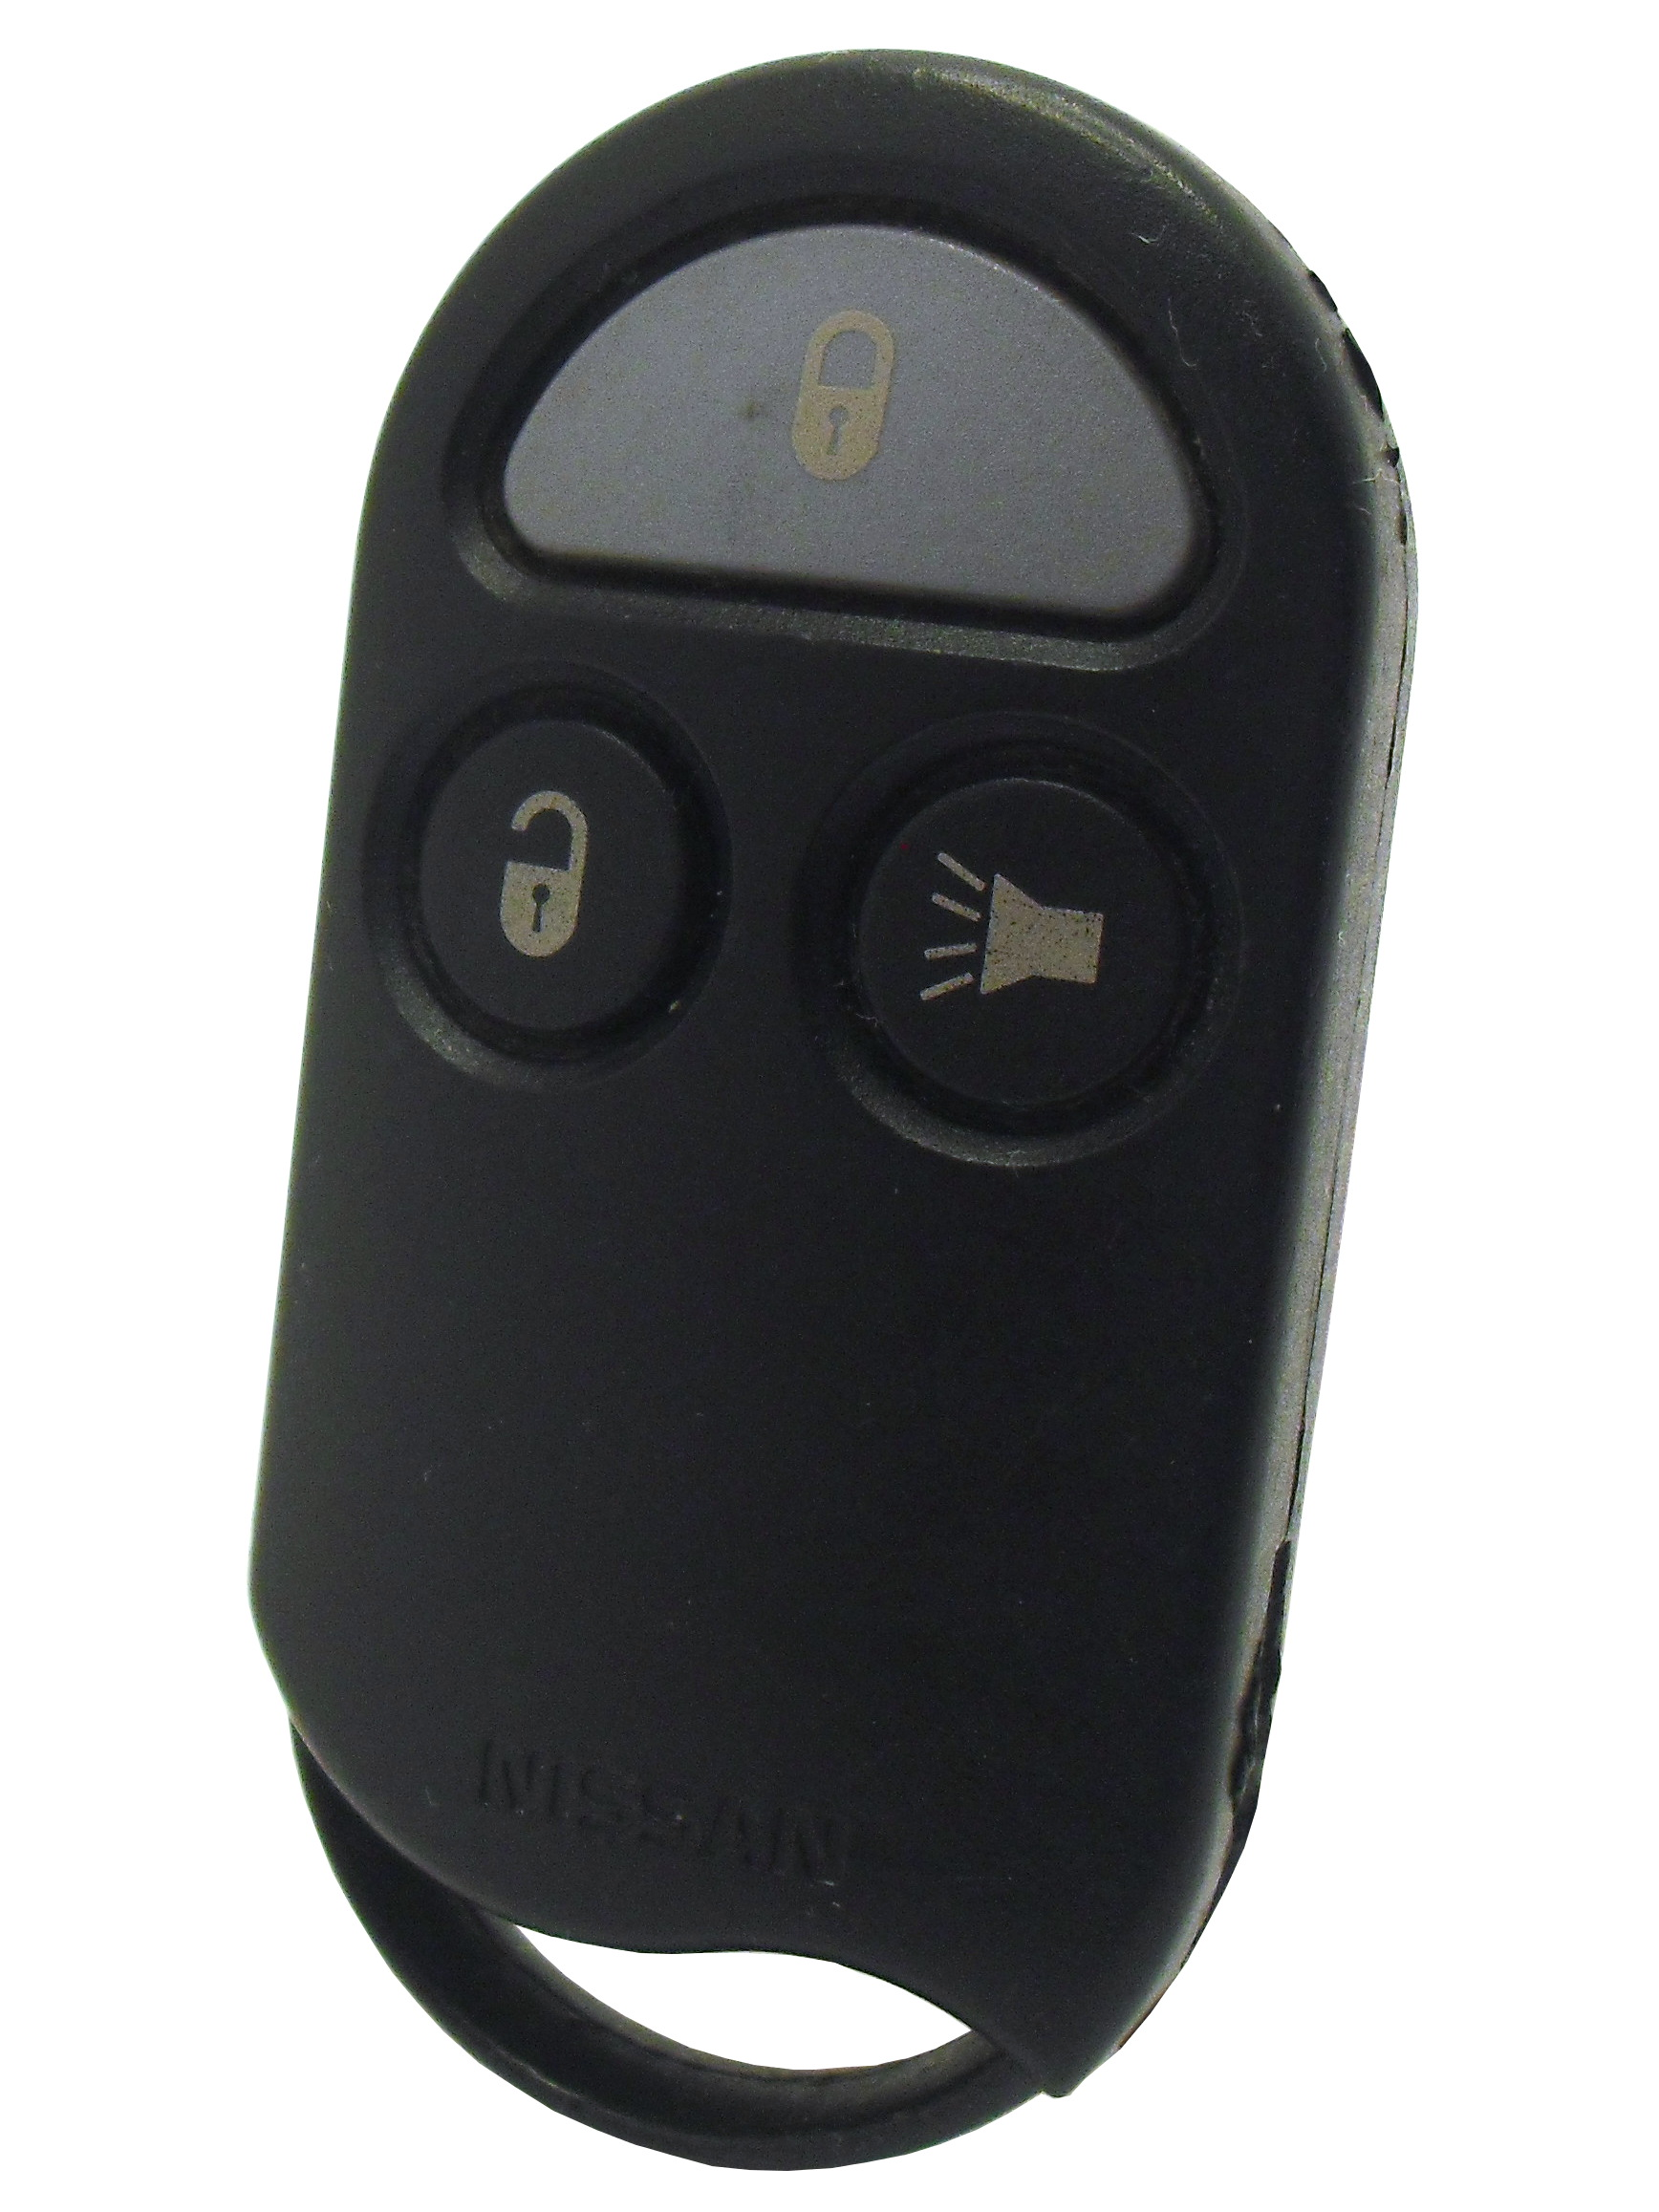 Nissan Keyless Entry Car Remote - 3 Button